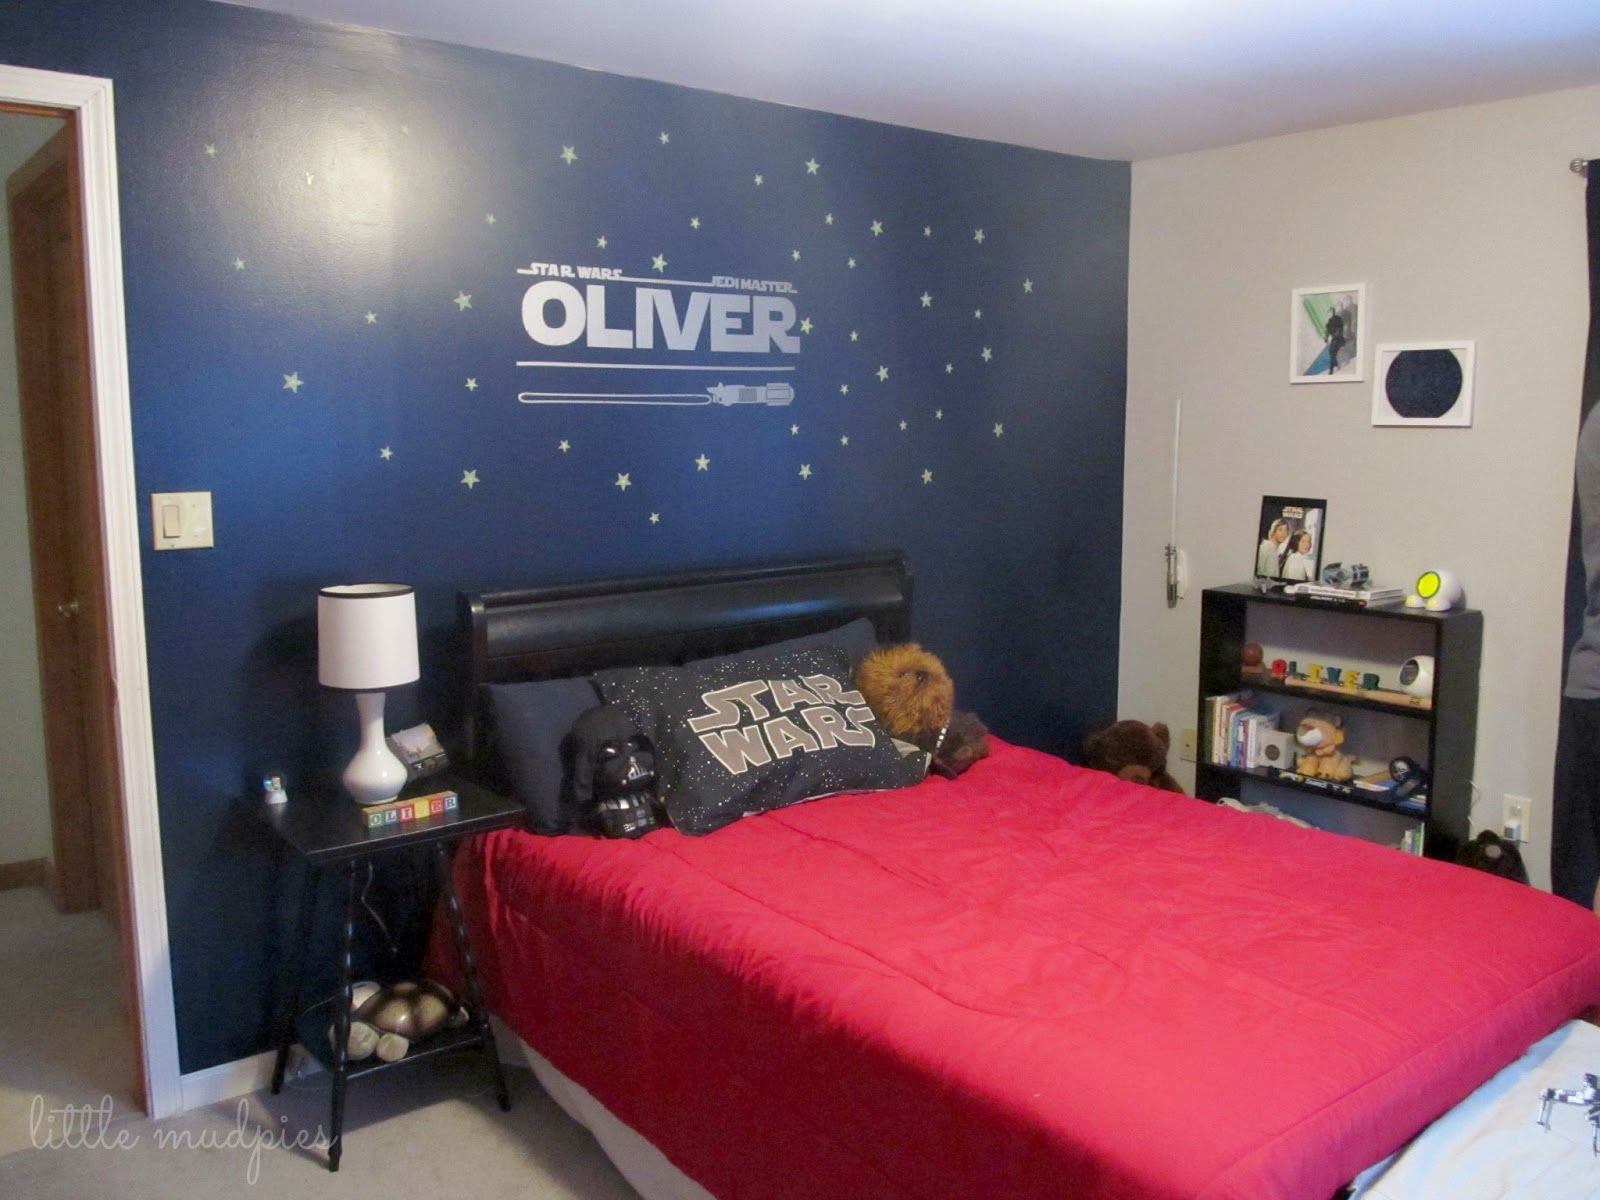 Star Wars Bedroom Ideas Themes Star Wars Themed Bedroom Via Little Mudpies One Dark Wall